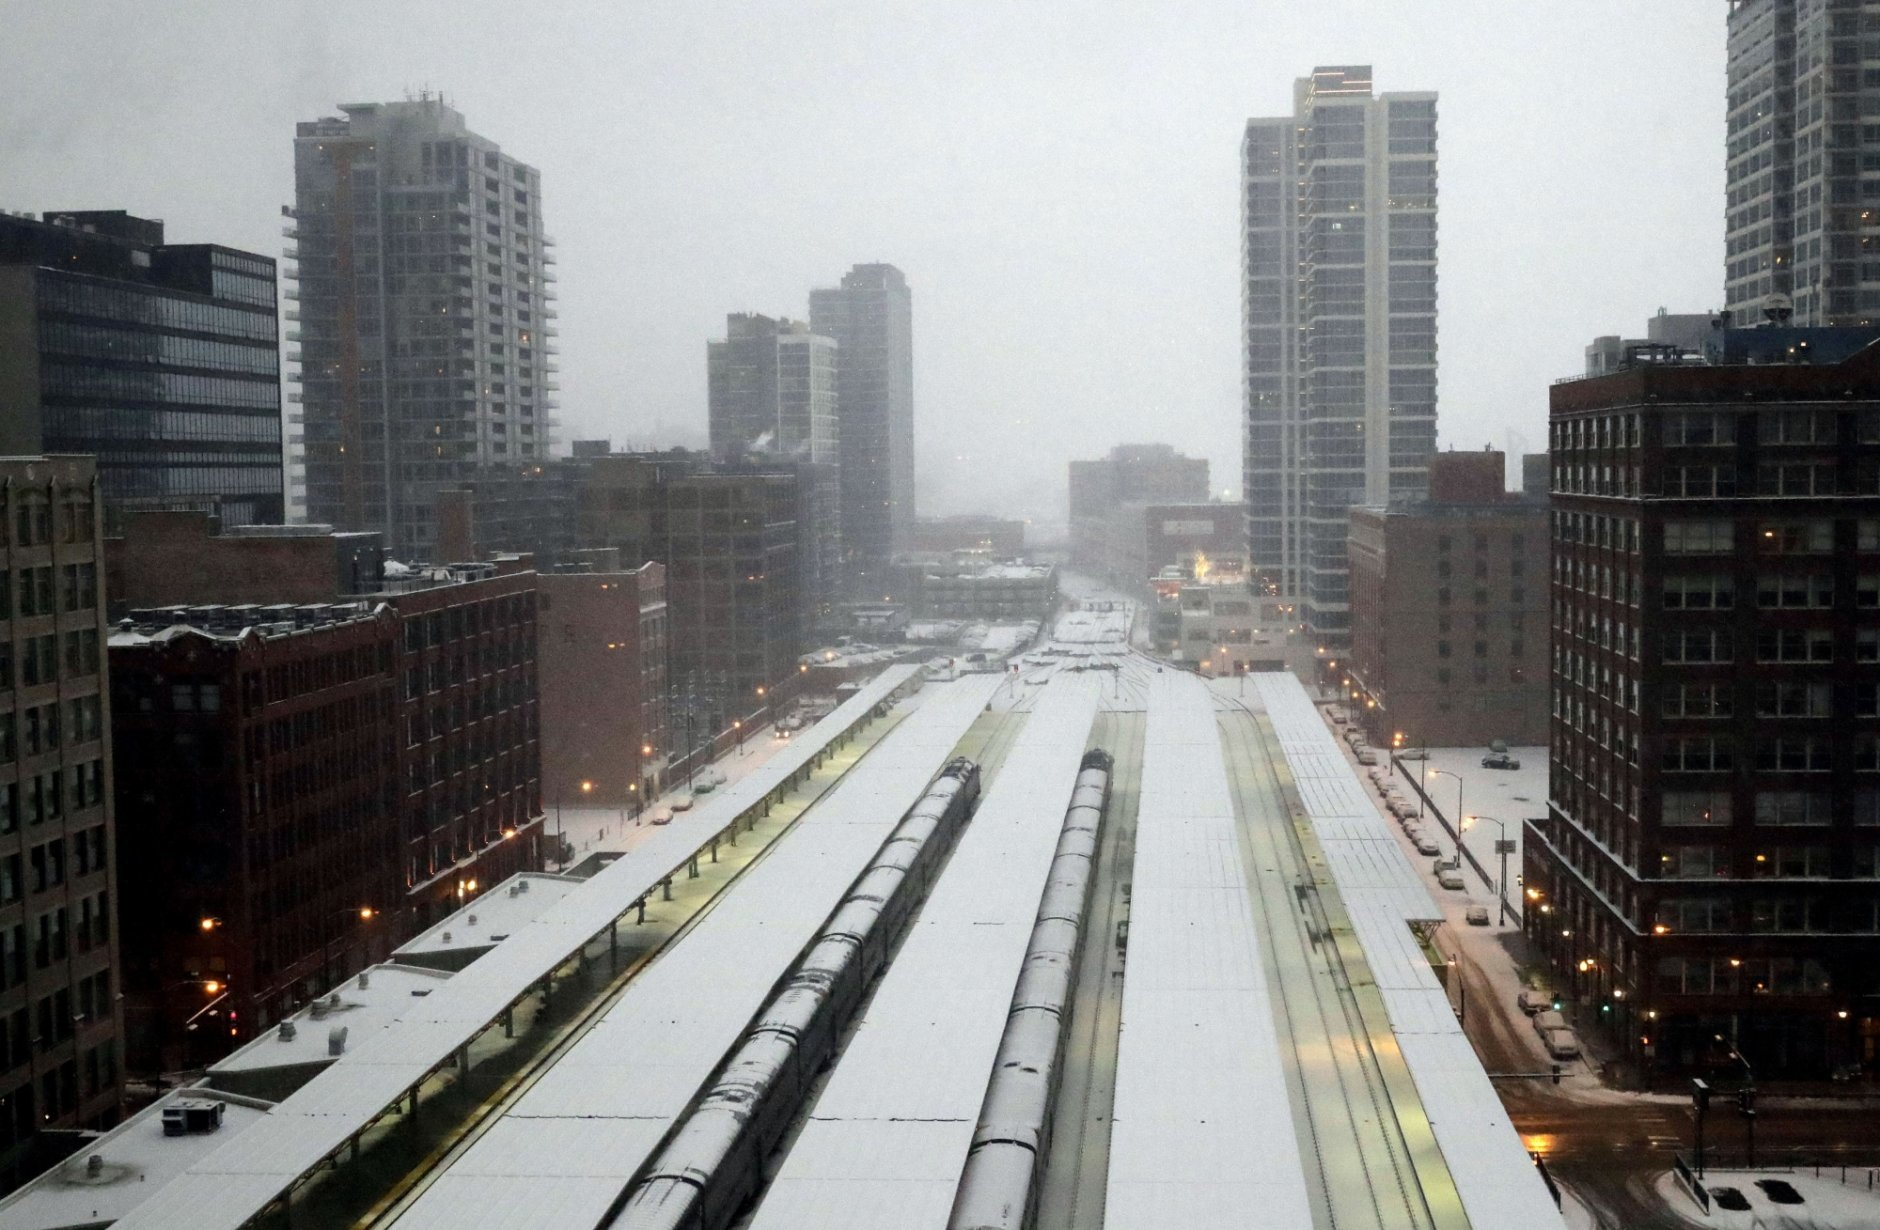 Commuter trains are parked at the LaSalle Street station under a heavy snow fall in downtown Chicago, Saturday, Jan. 12, 2019. A winter weather advisory is in effect until 3 a.m. Sunday and covers northern Illinois and Northwest Indiana including Lee, DeKalb, Kane, DuPage and Cook counties. (AP Photo/Nam Y. Huh)